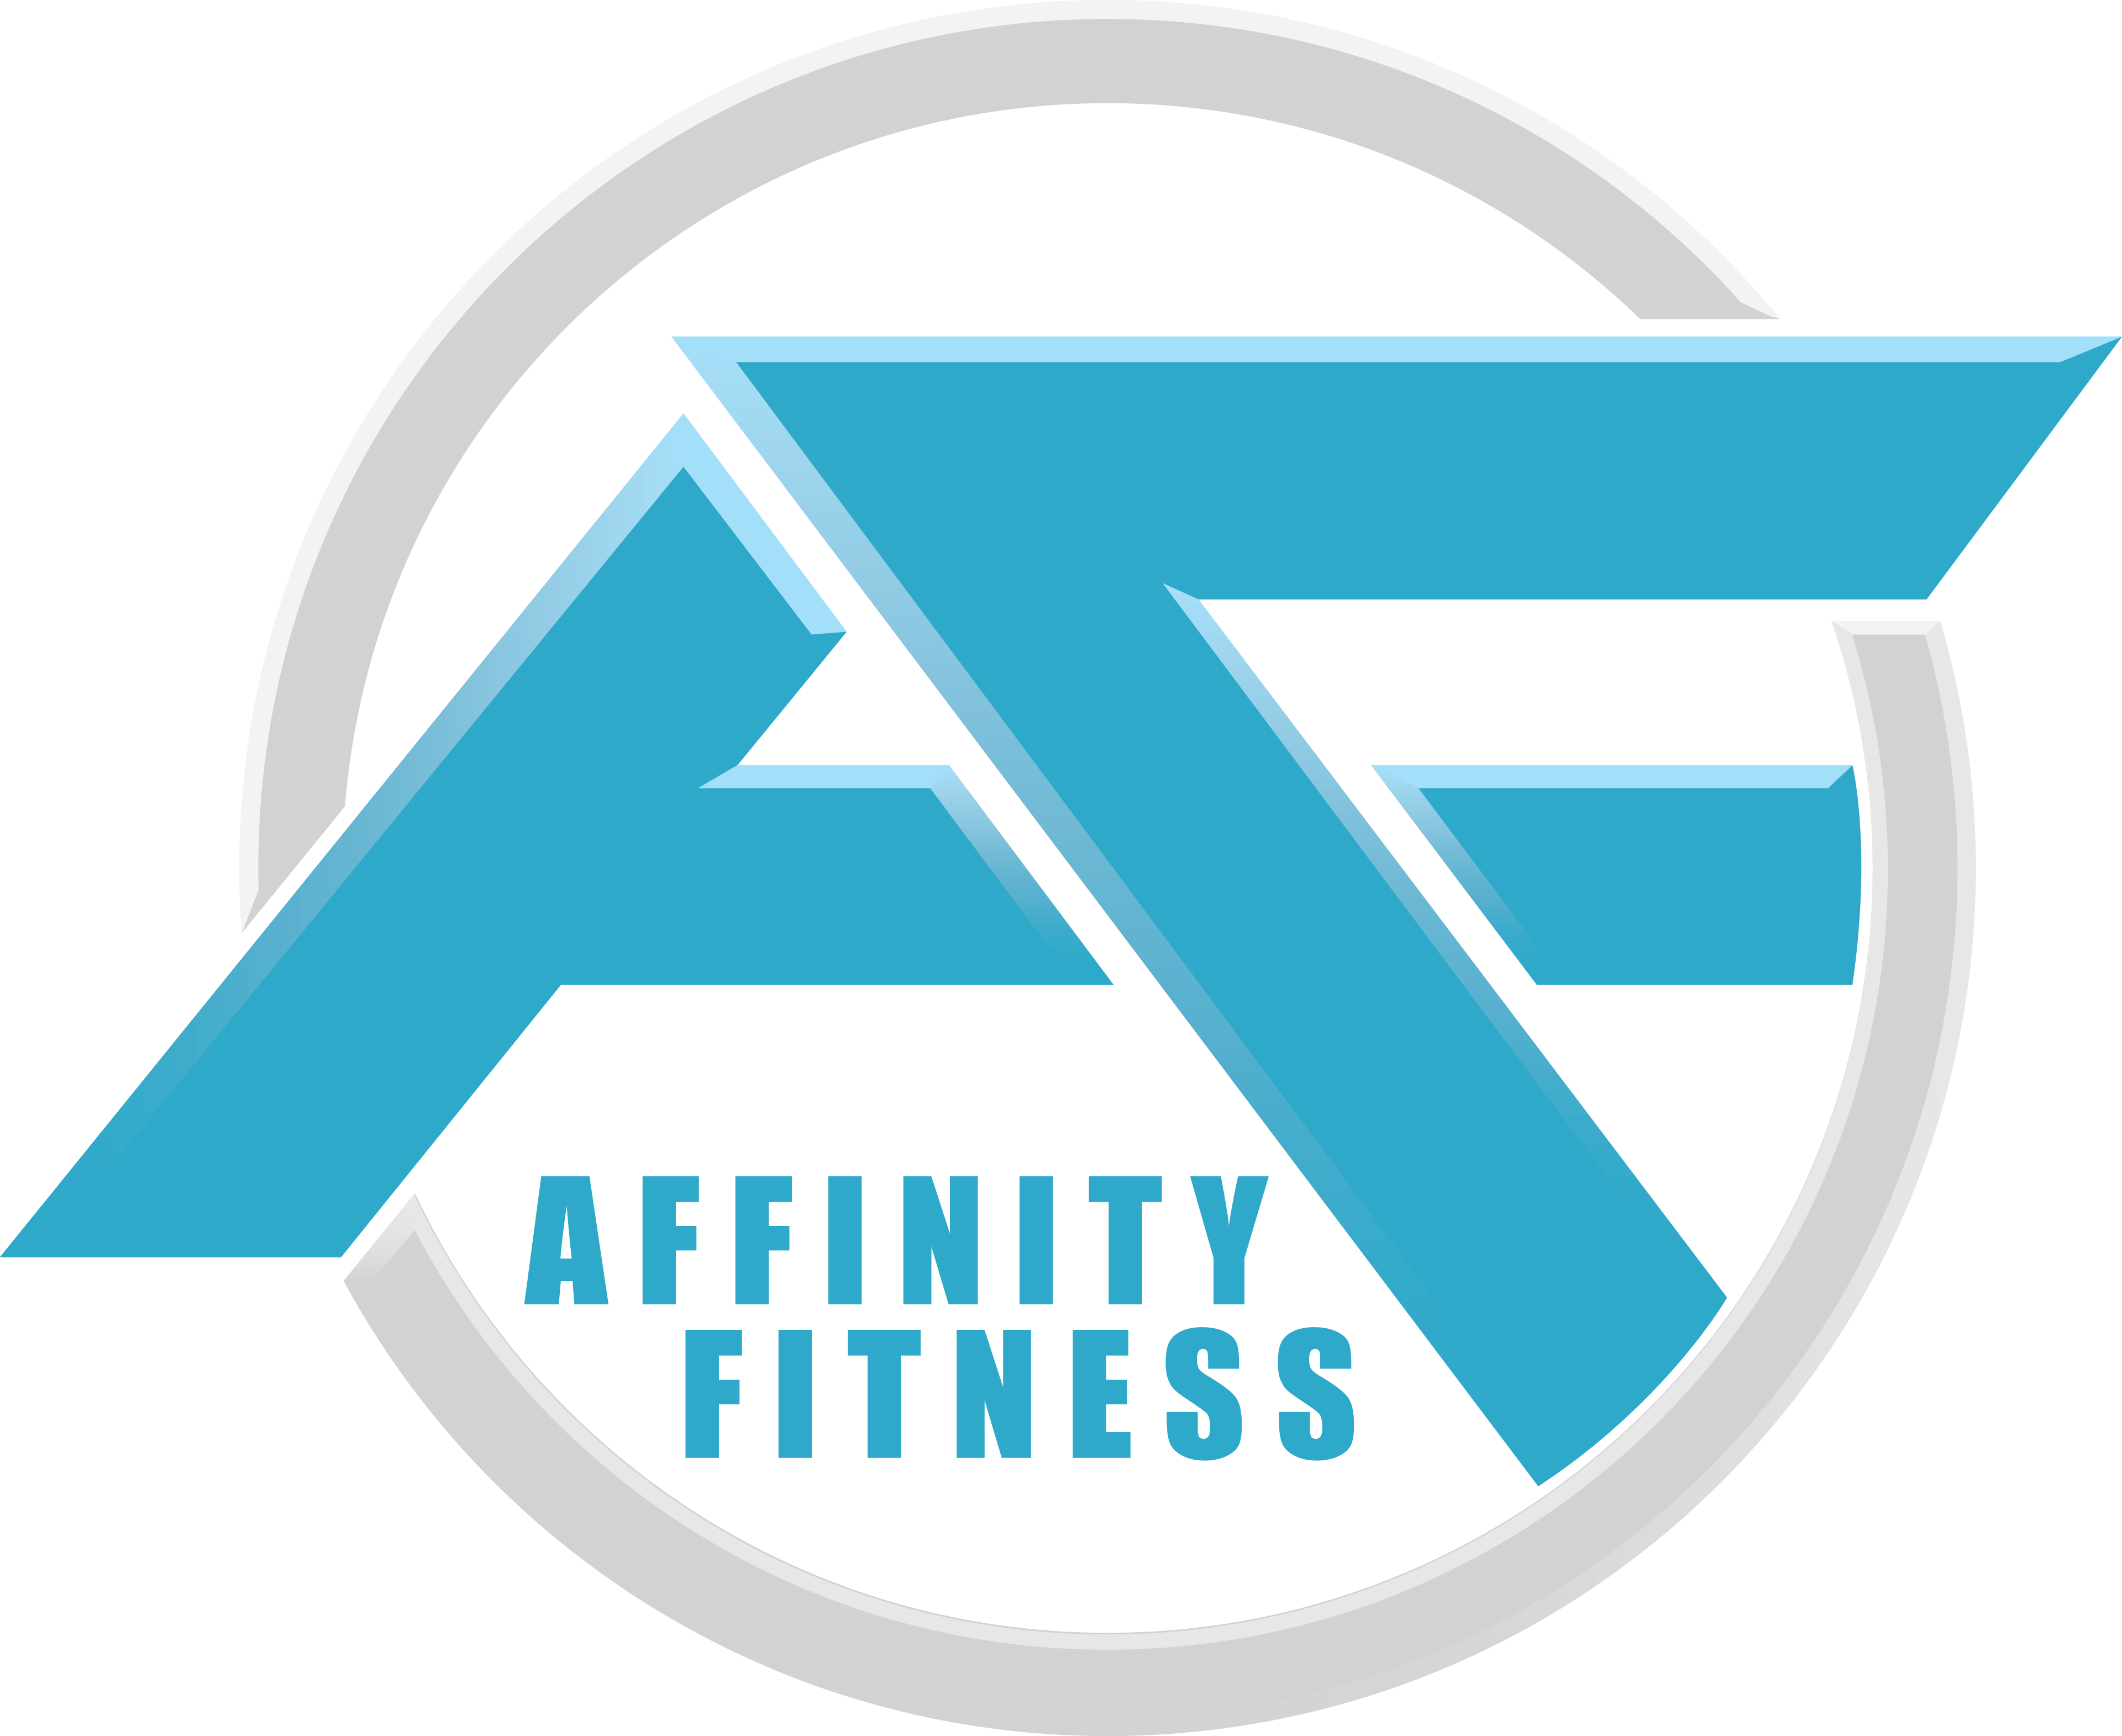 AFFINITY FITNESS